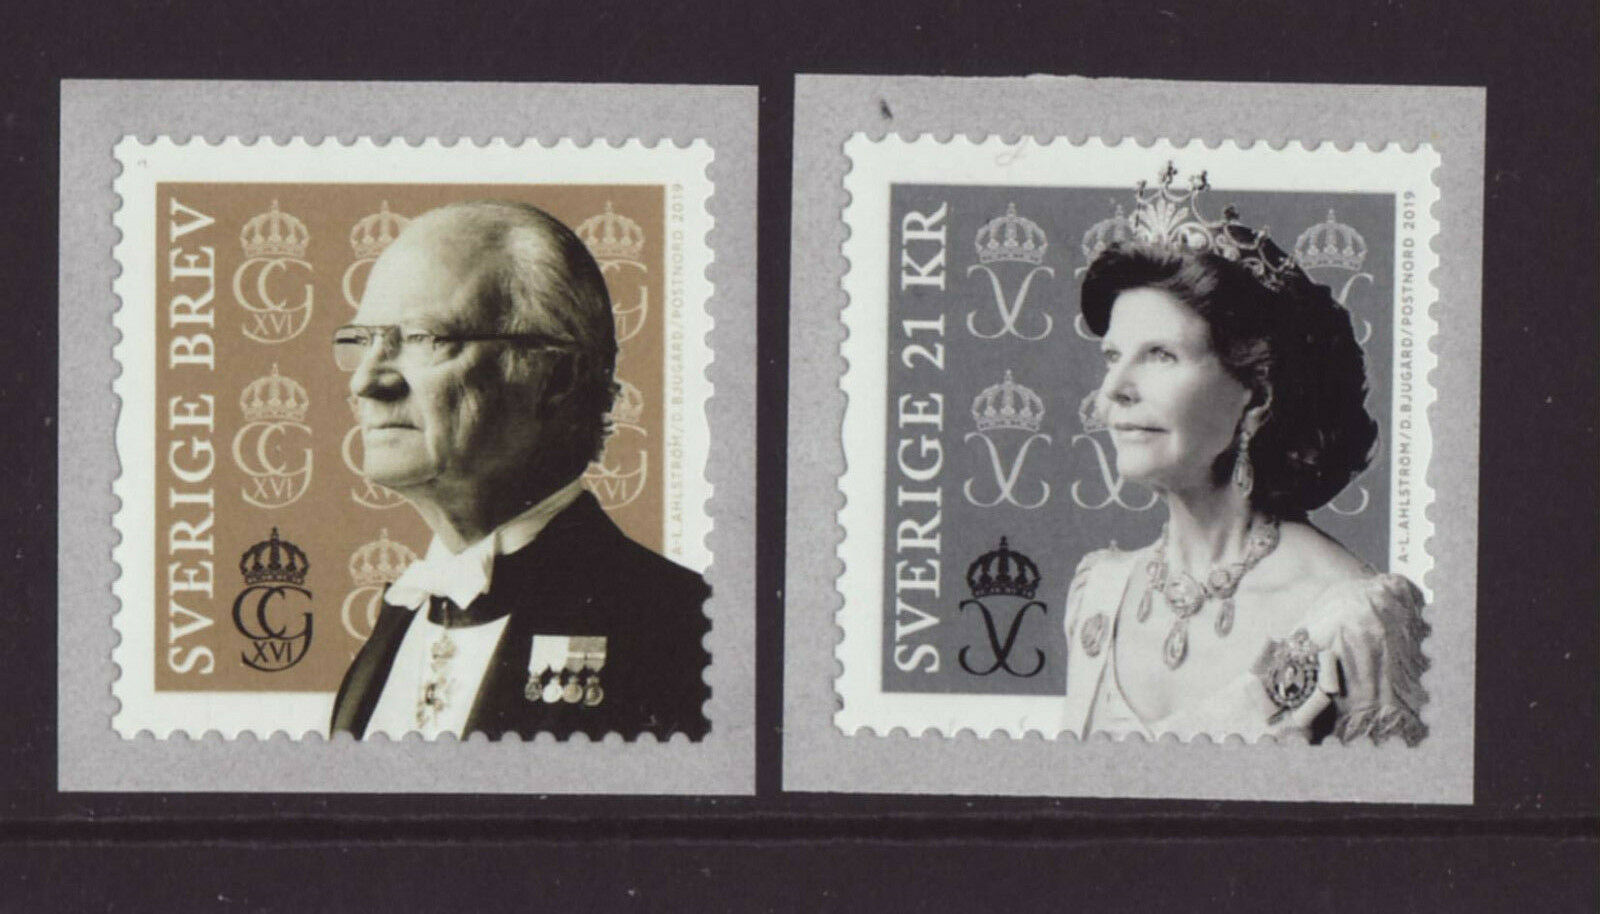 Sweden - King Carl Gustaf and Queen Silvia (January 10, 2019)